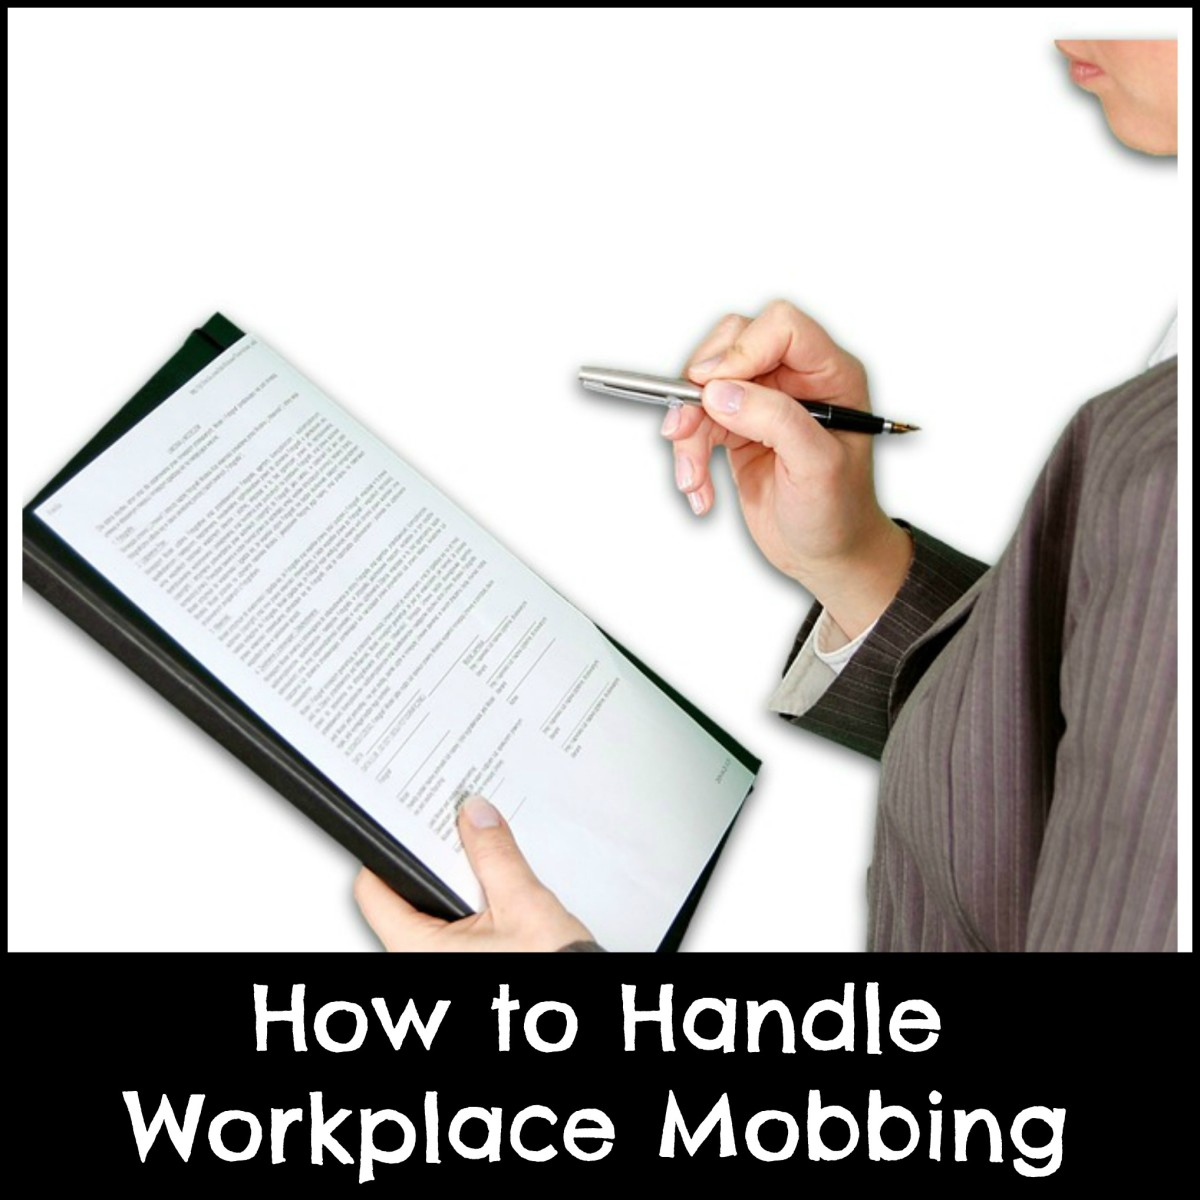 What to Do if You Are Mobbed at Work